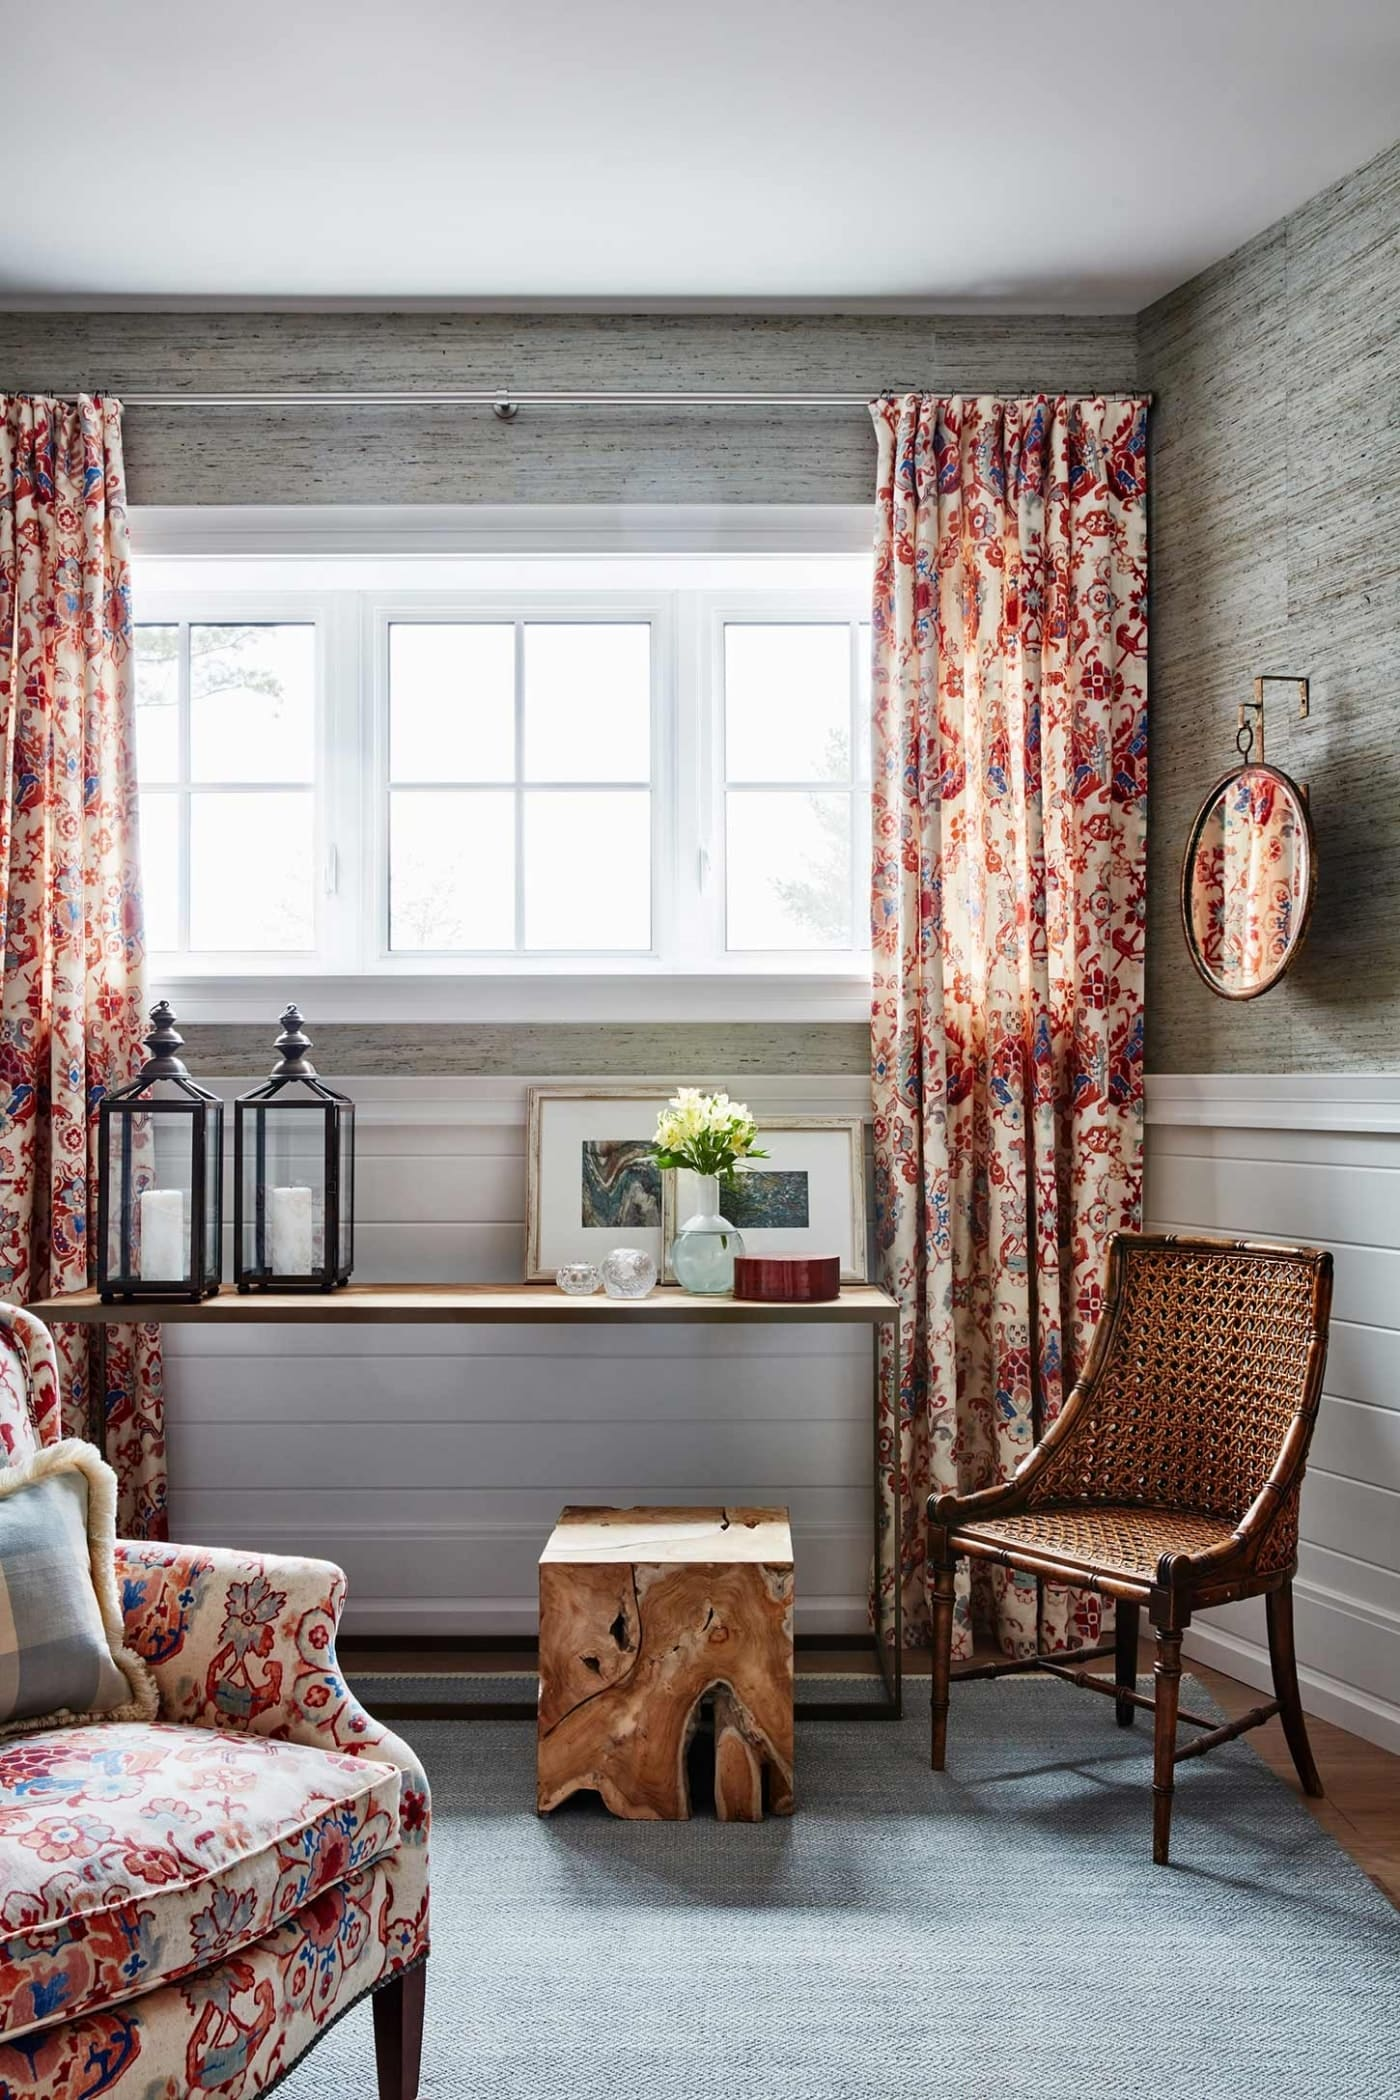 Table Under window with red patterned drapes in Sarah Richardson red guest bedroom in off the grid house #cottagestyle #SarahRichardson